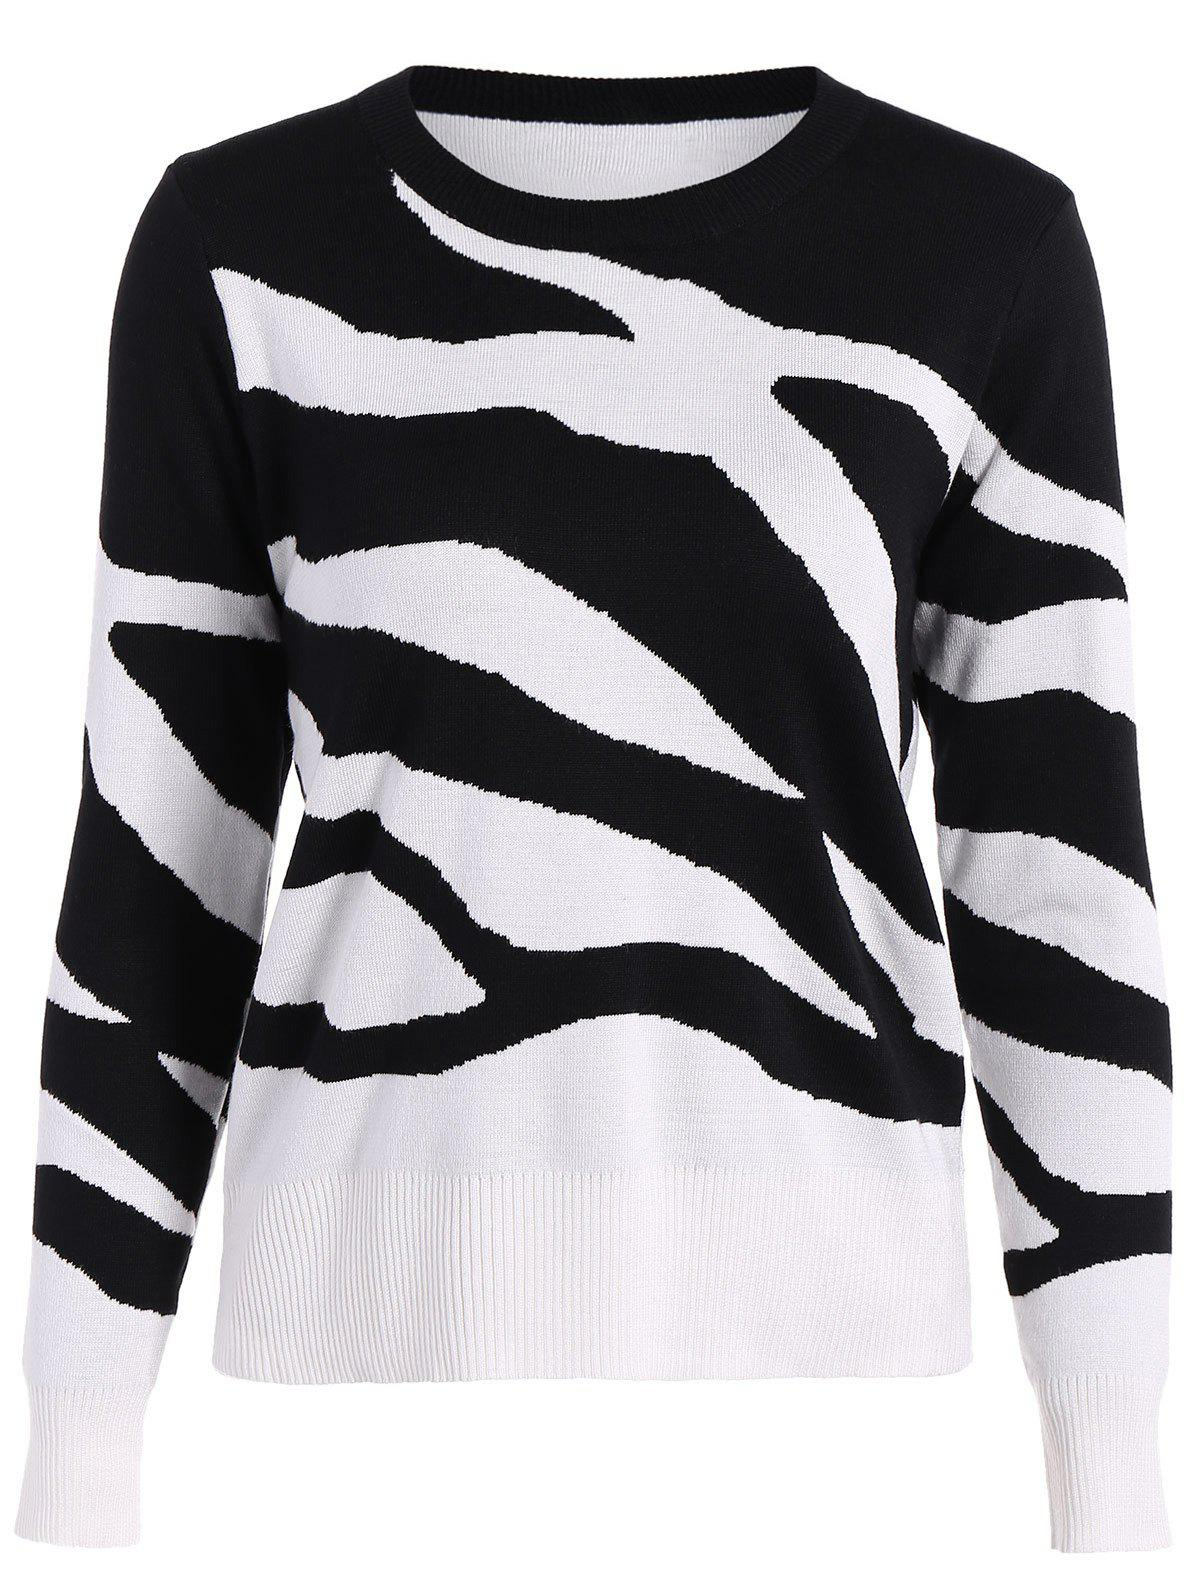 Two Toned Ribbed Hem Knitted Pullover - WHITE/BLACK M